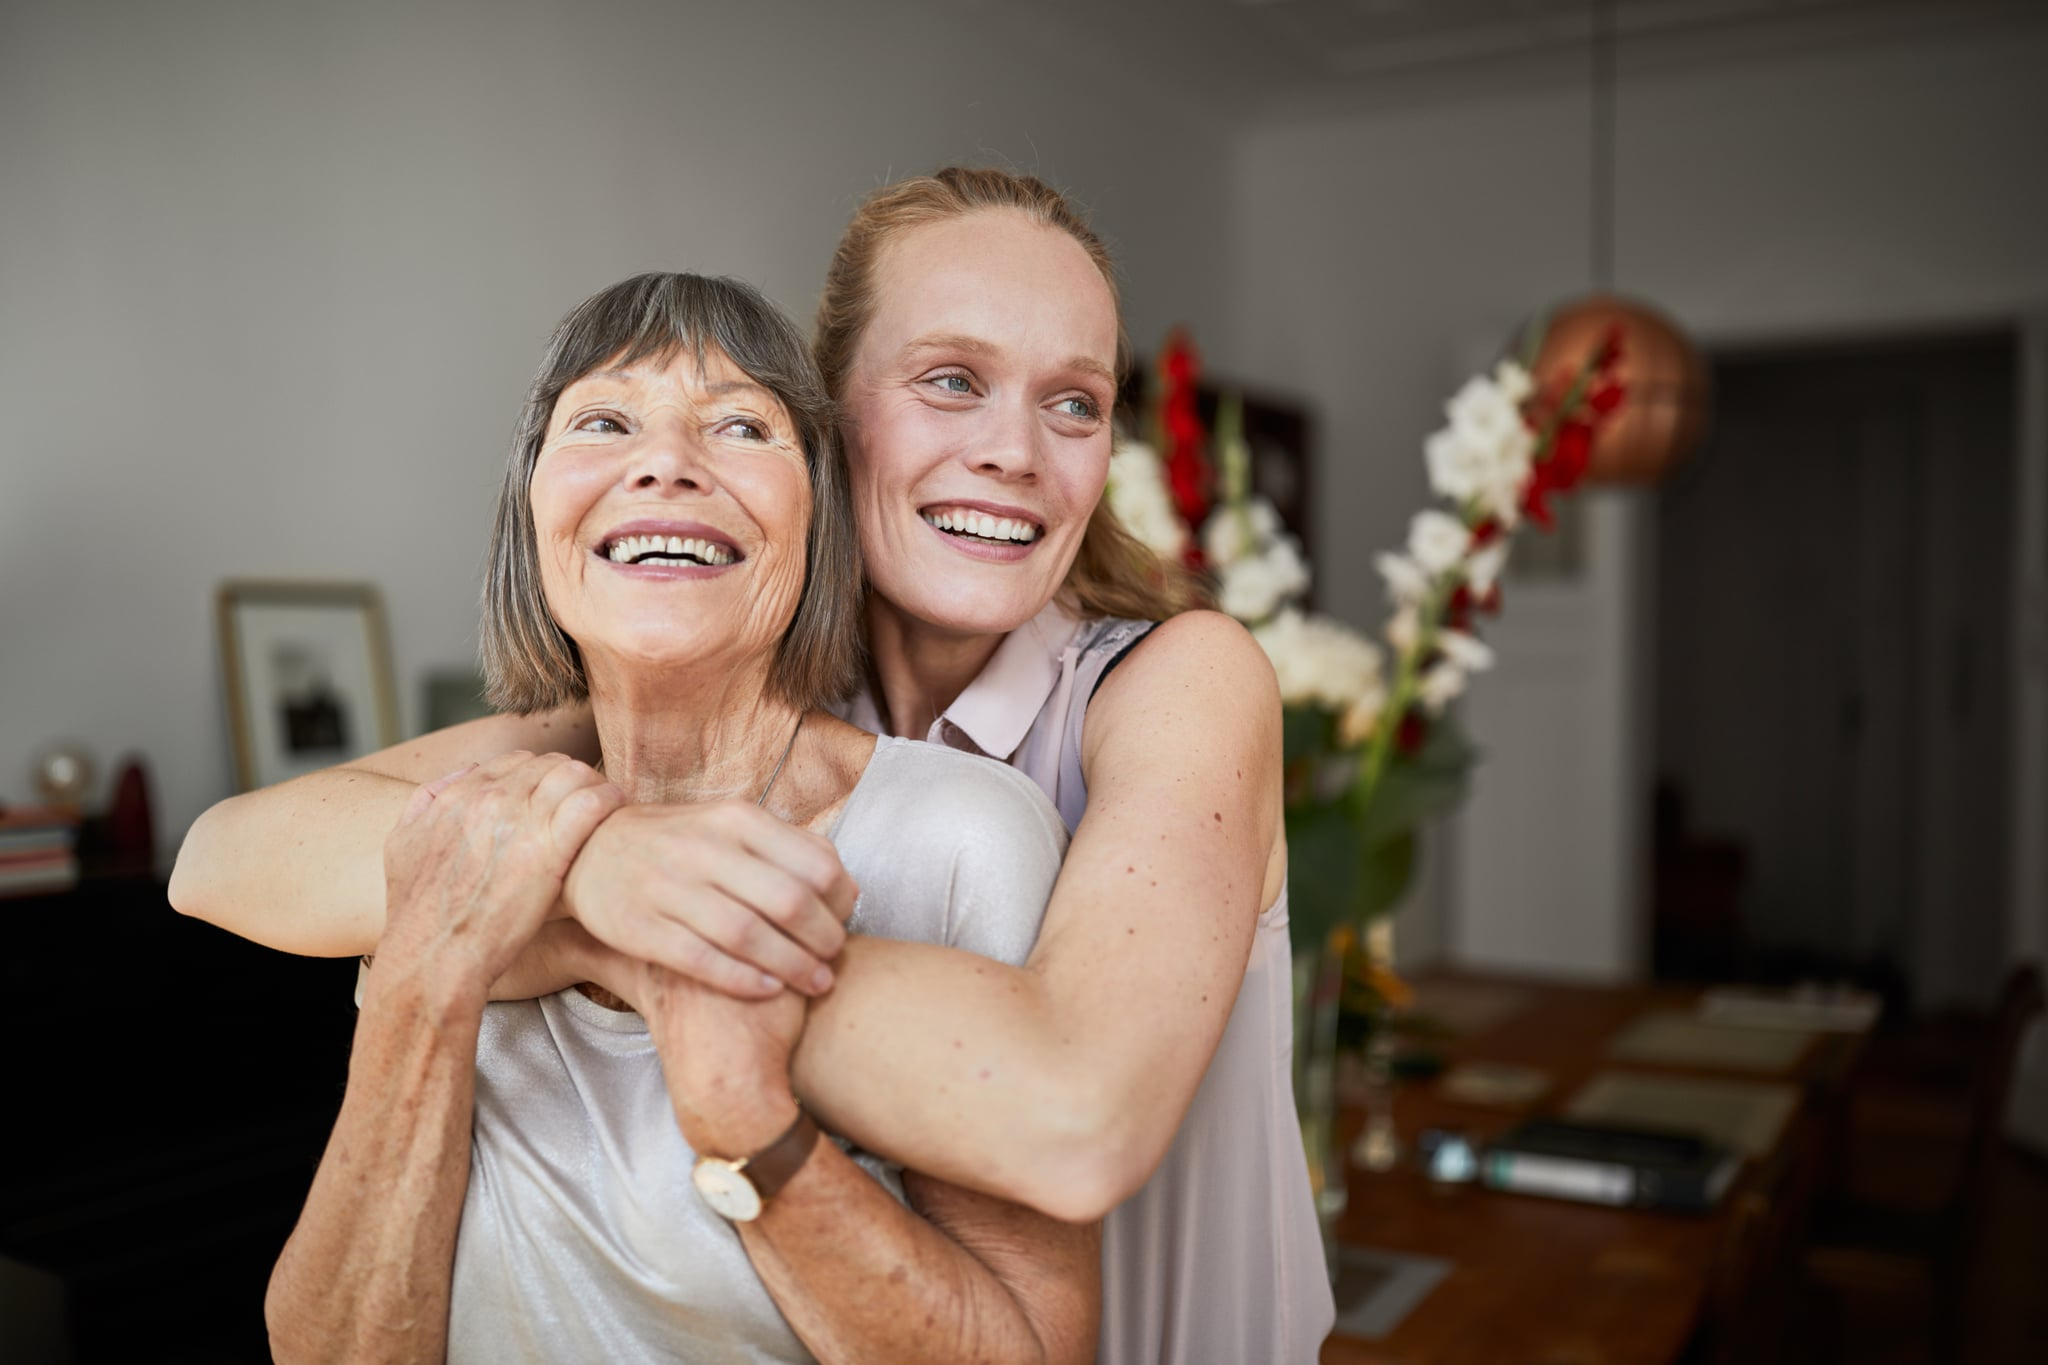 Cheerful mature woman embracing senior mother at home and looking away. Portrait of elderly mother and middle aged daughter smiling together.